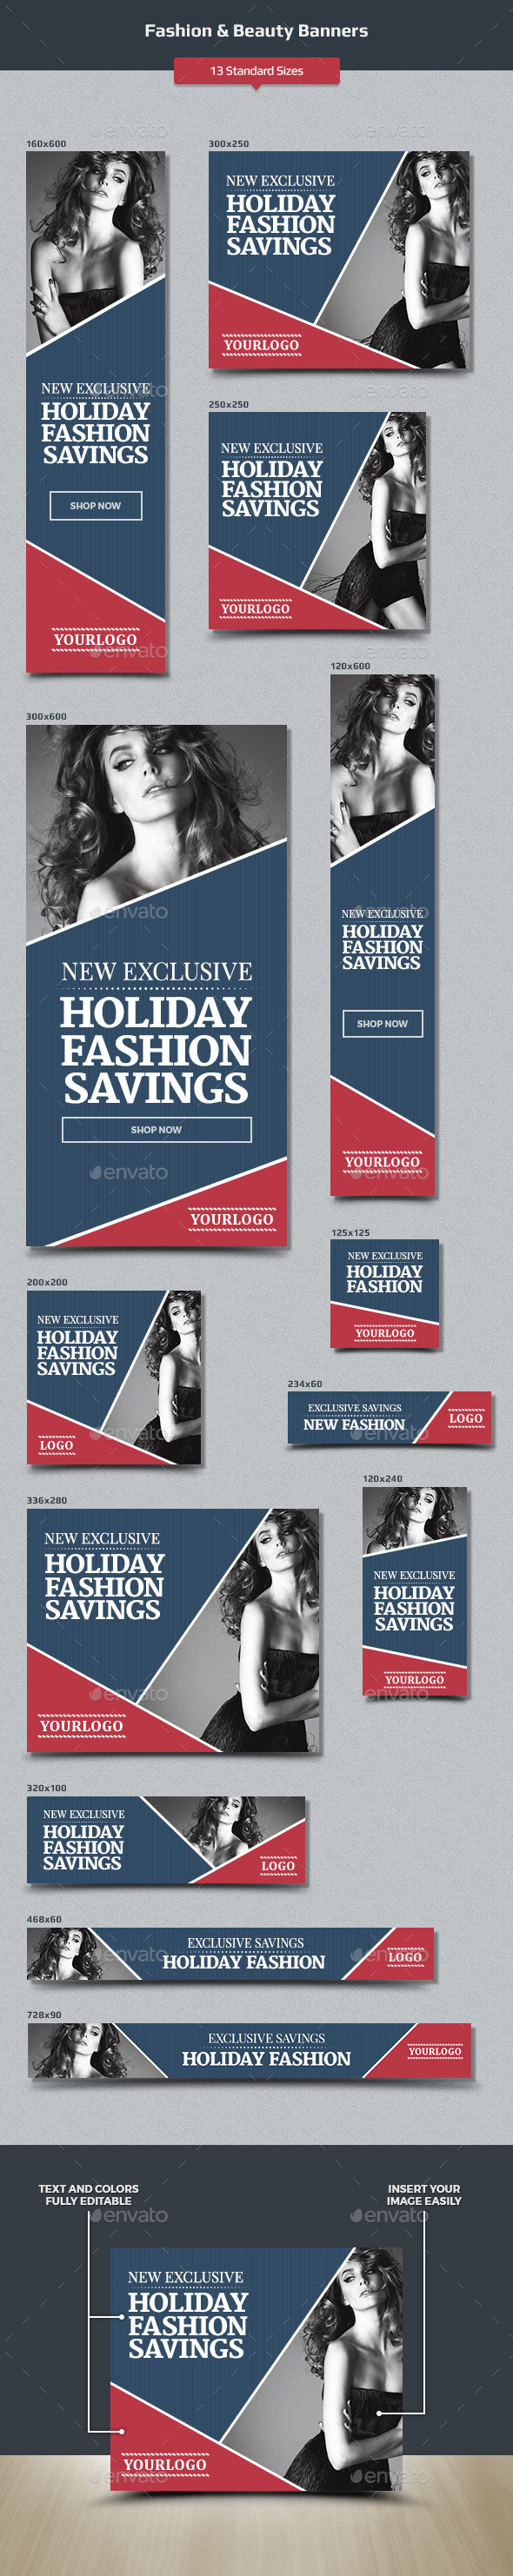 Fashion & Beauty Banners - Banners & Ads Web Elements